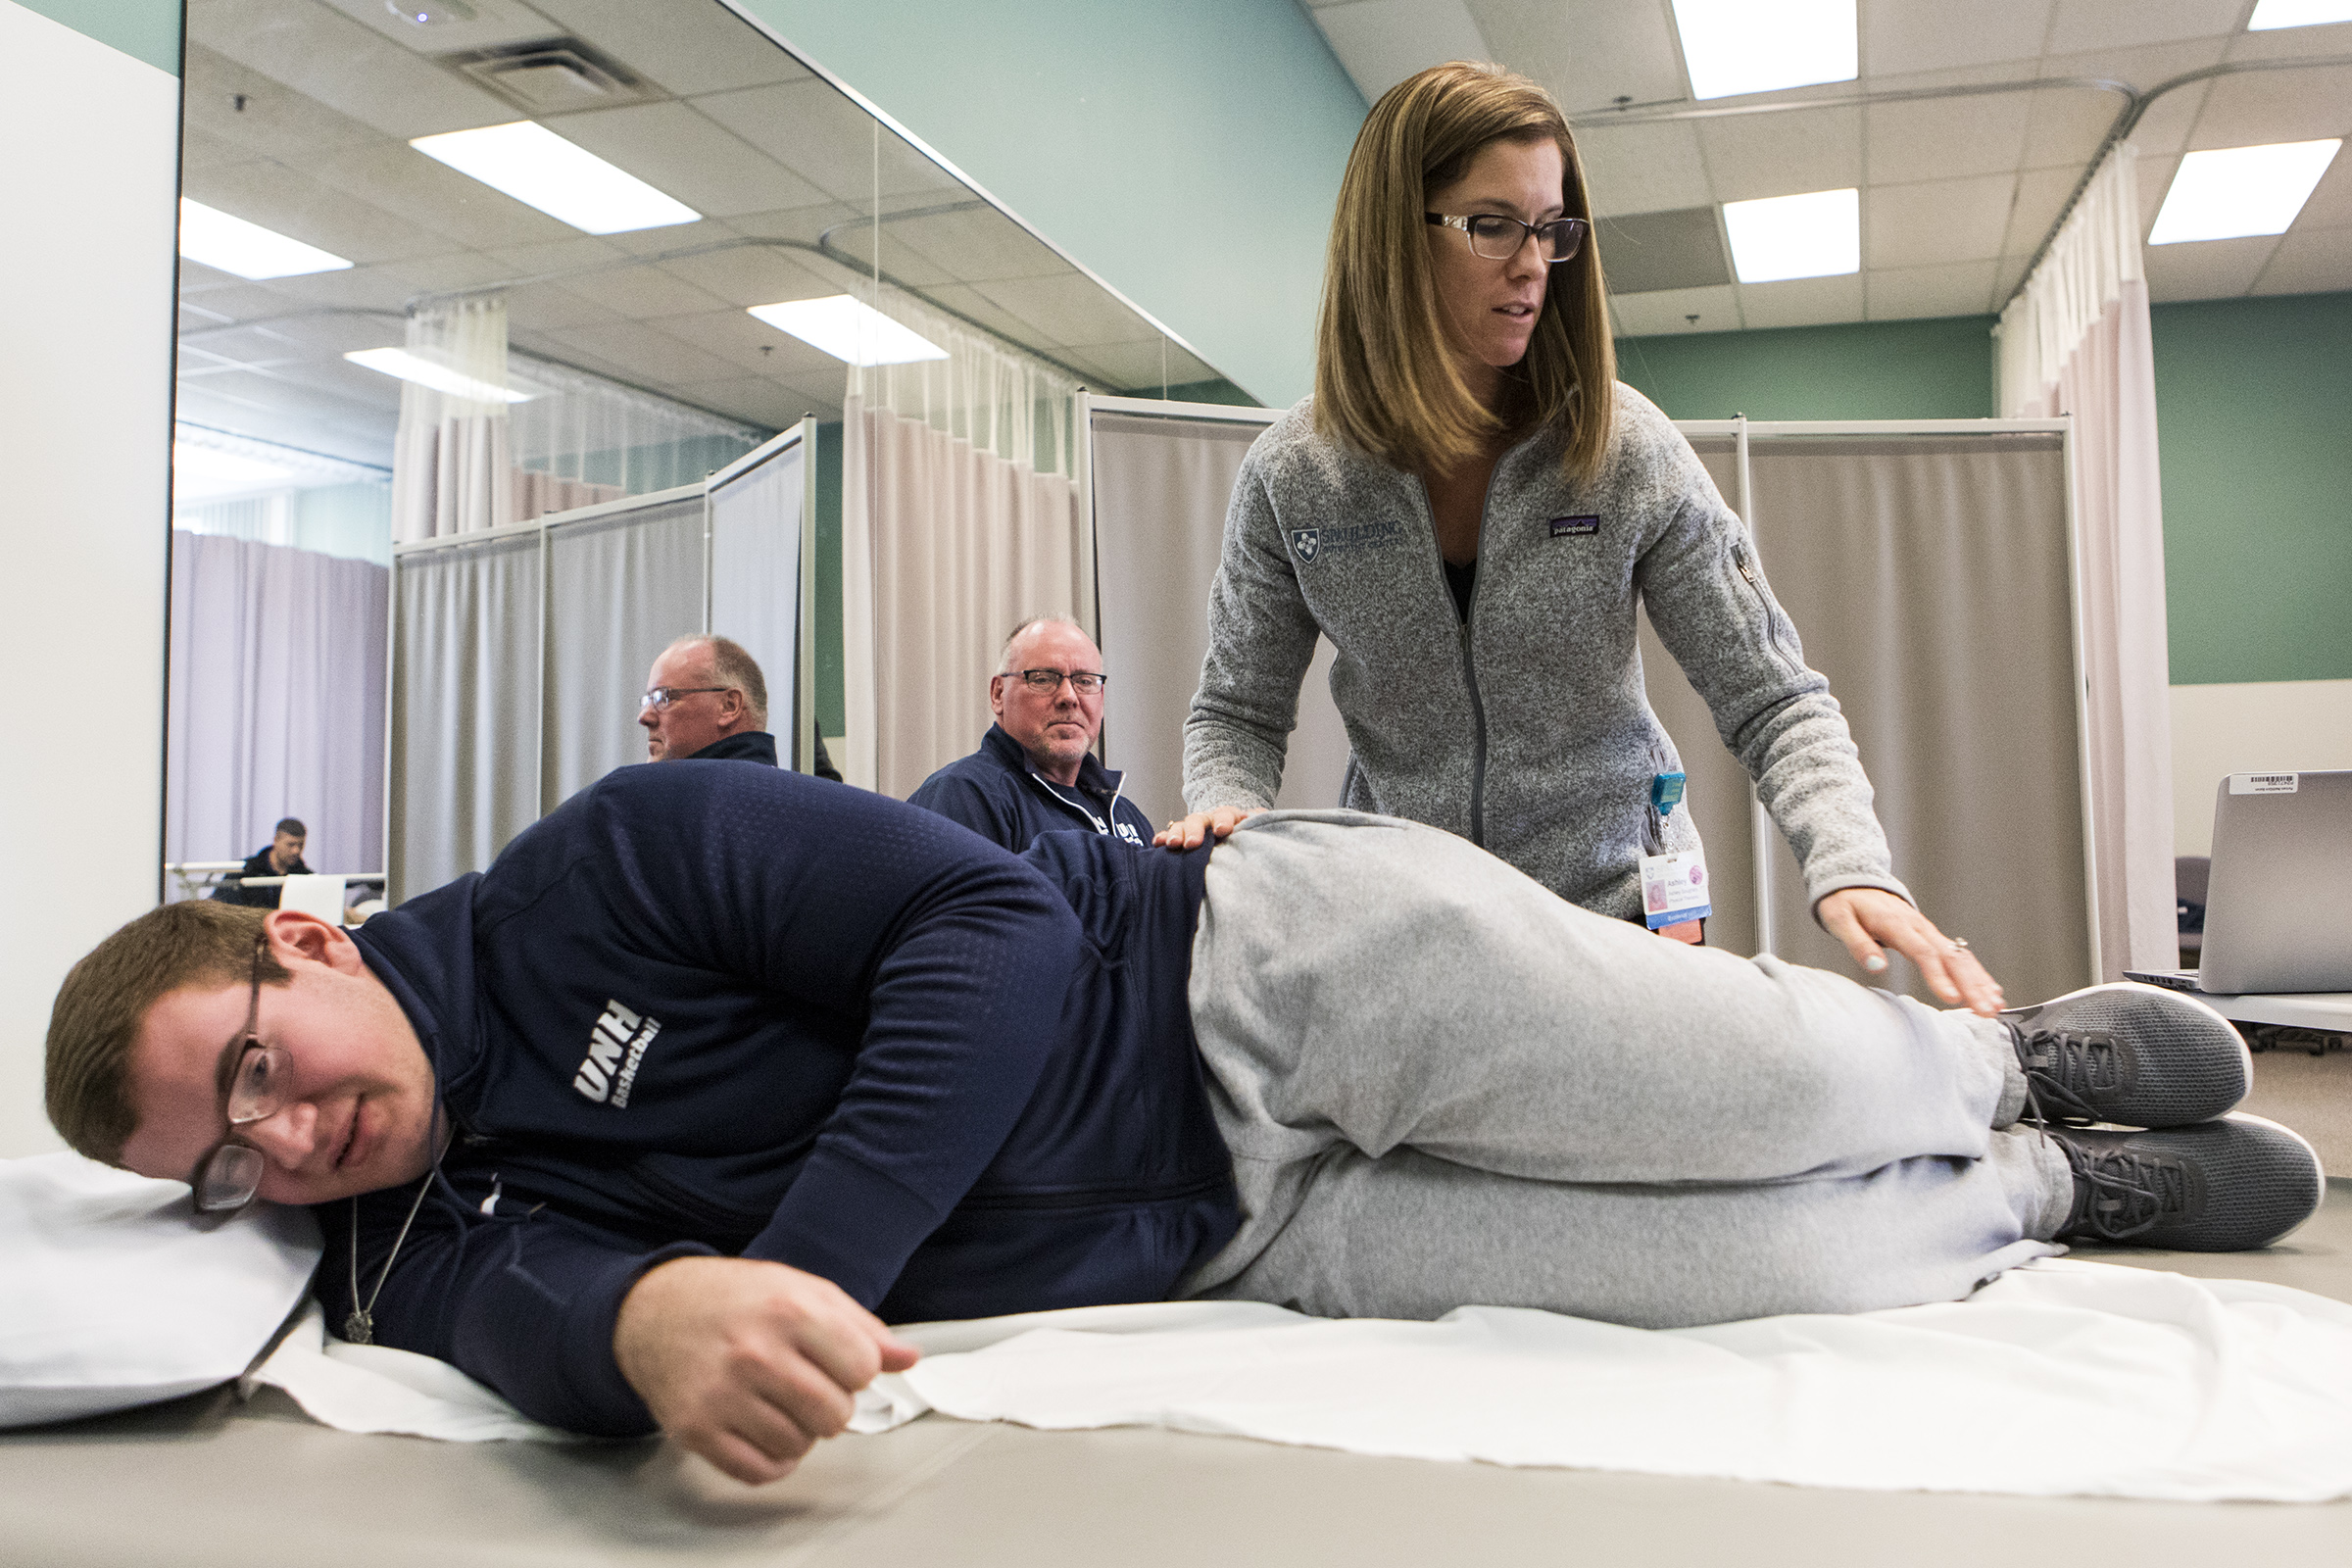 Robbie Walker watches as physical therapist Ashley Soughley gives his son Connor an exam at Spaulding Outpatient Center in Framingham on Oct. 31, 2018.